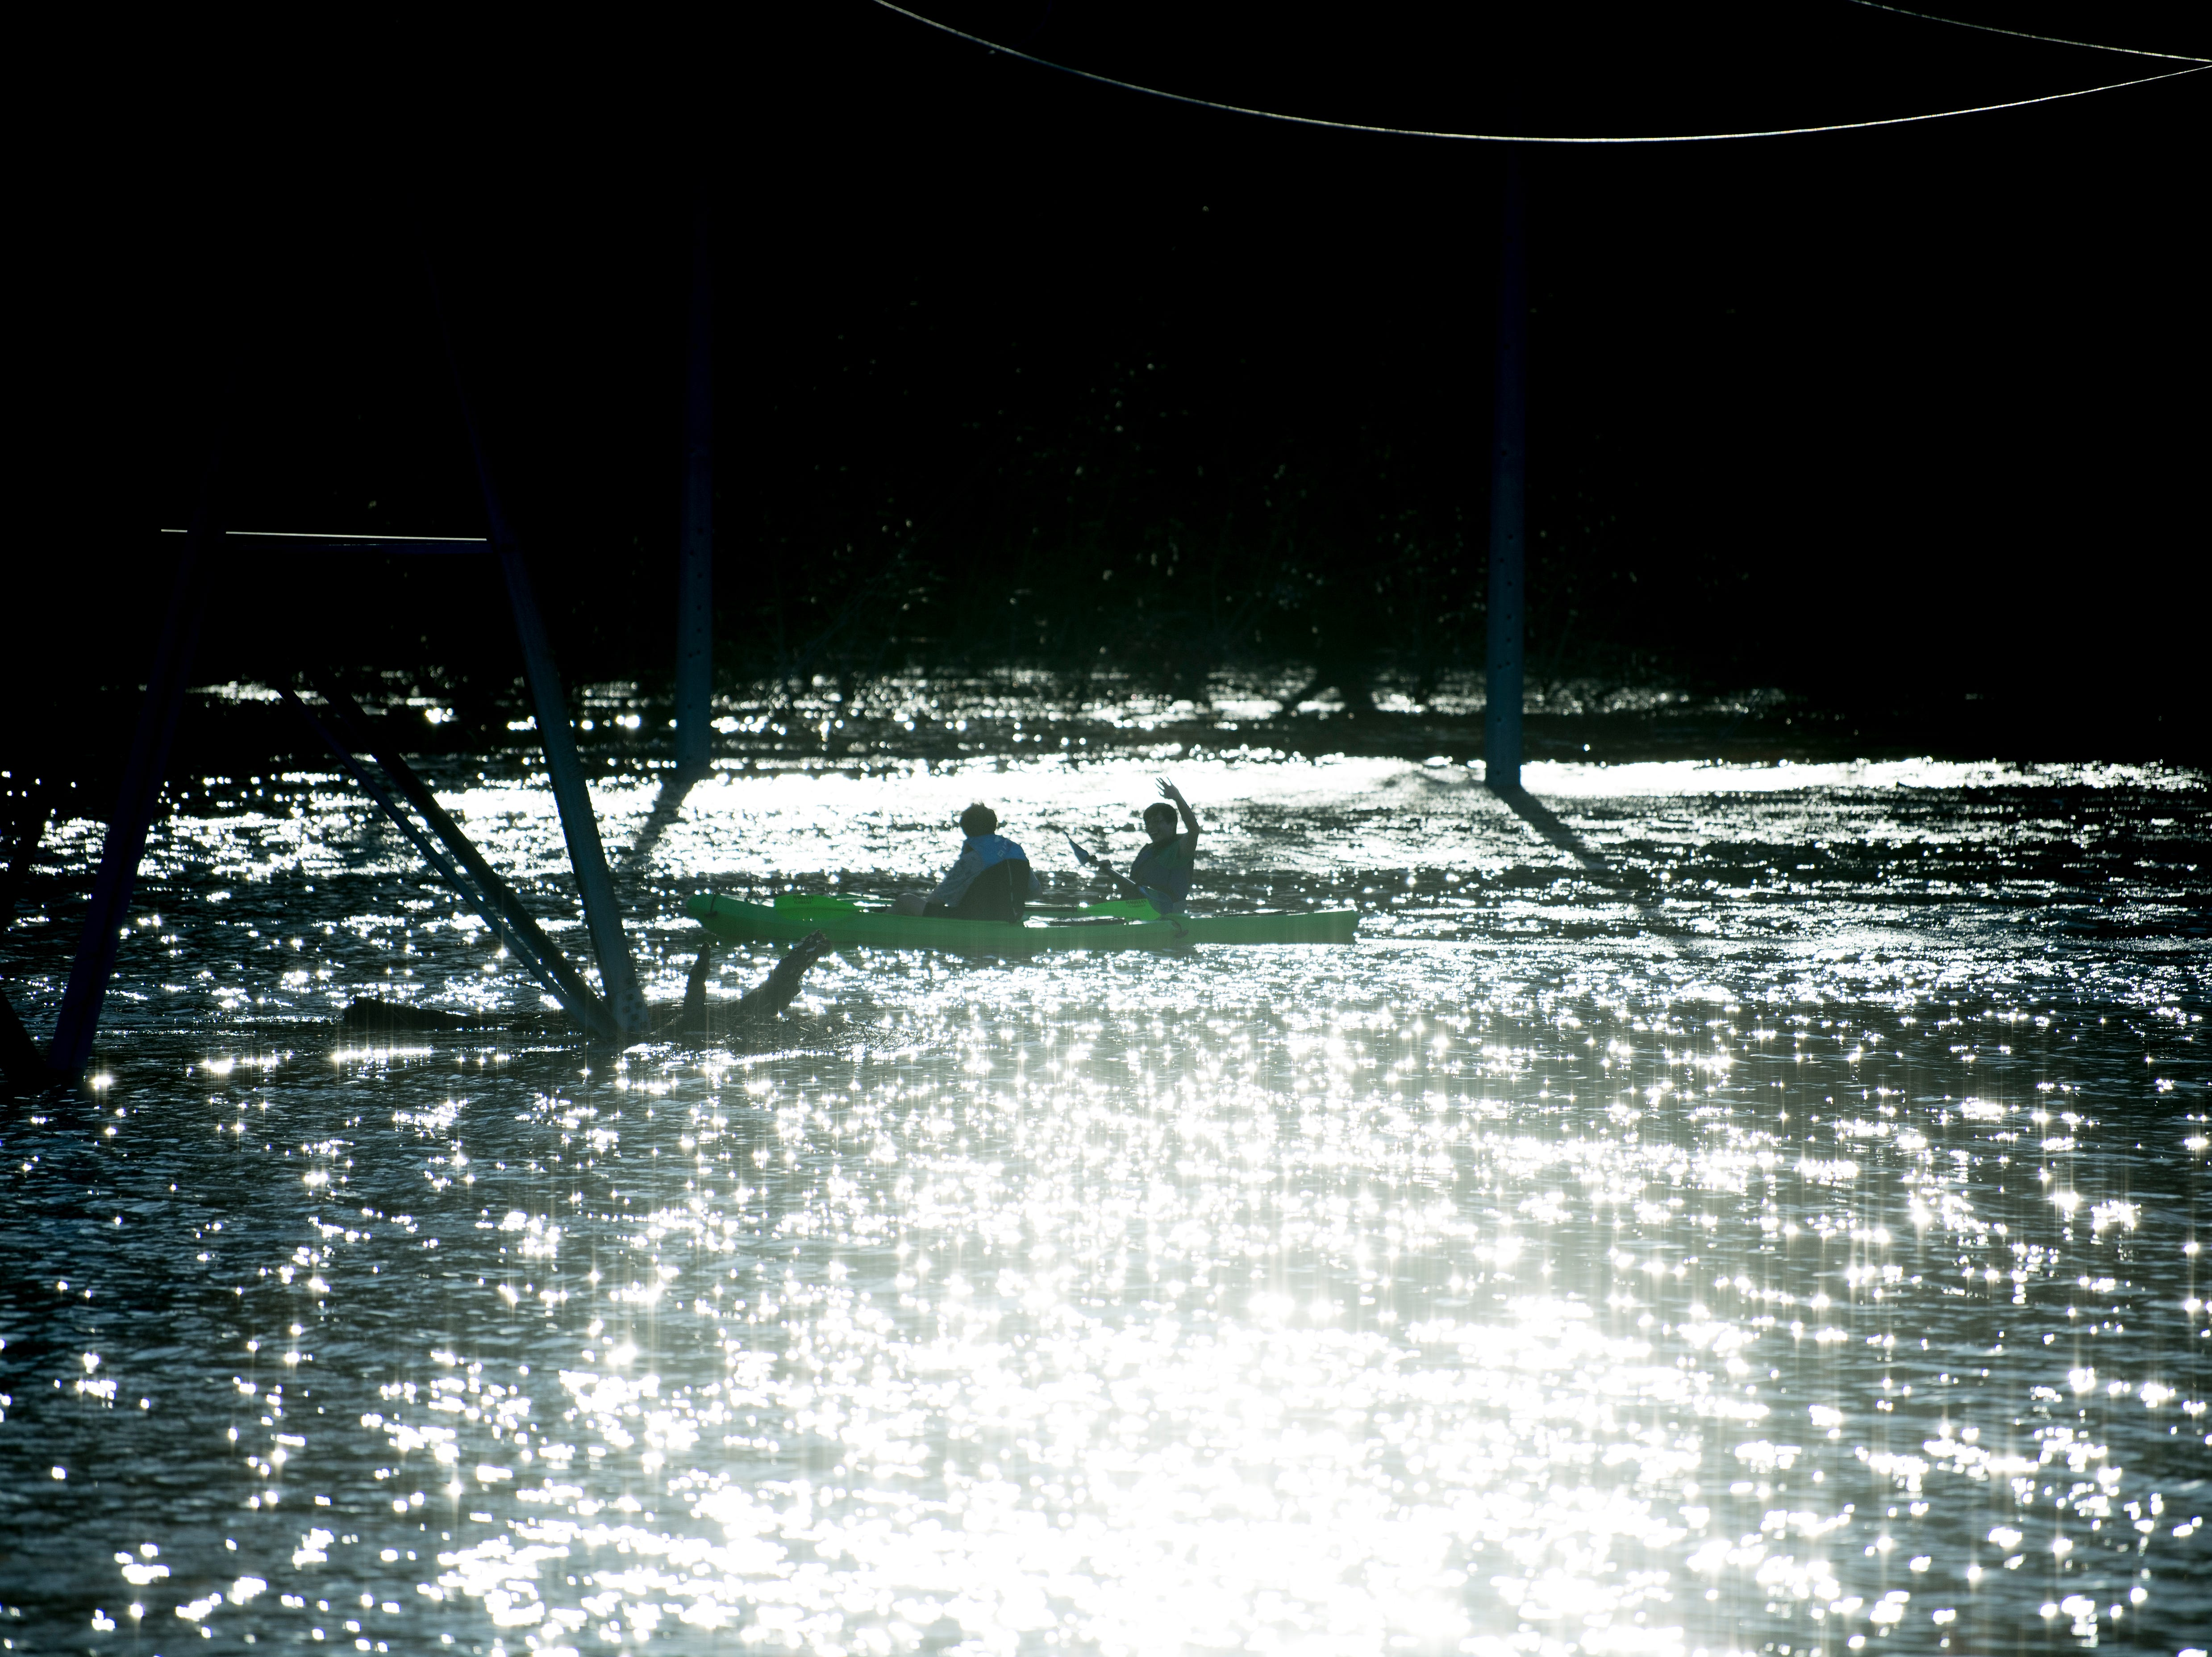 Kayakers wave from the distance while paddling beneath power lines near the Sunoco on Ebenezer Road and Gleason Drive in Knoxville, Tennessee on Sunday, February 24, 2019.